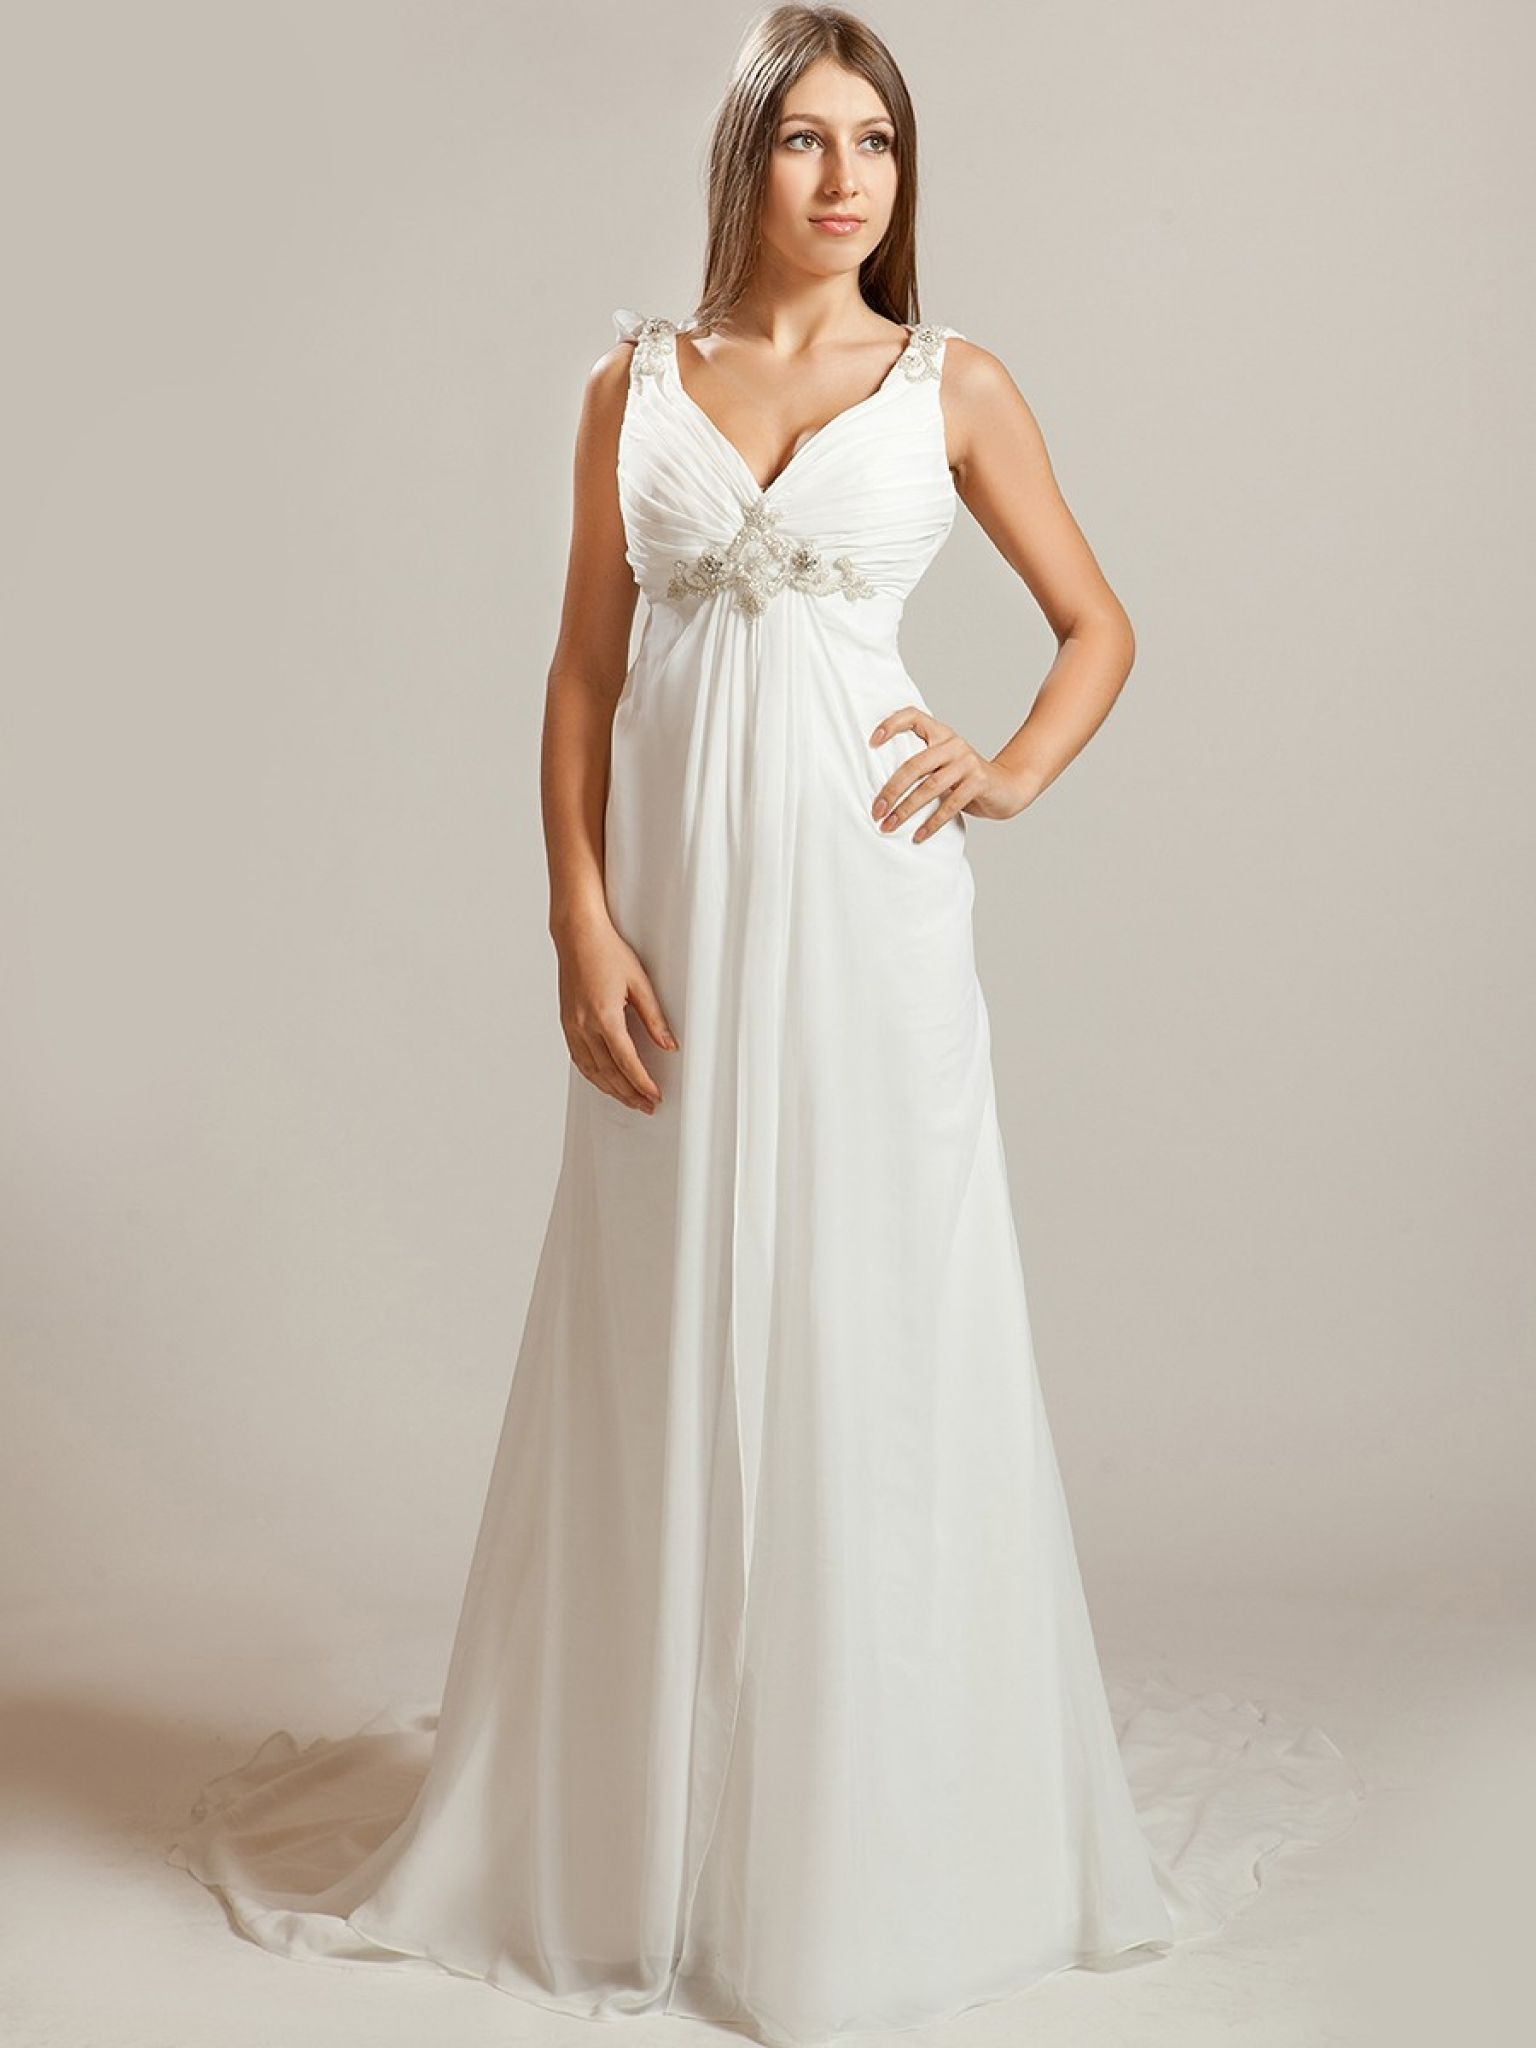 Cowl back lace wedding dress  summer casual wedding dresses  plus size dresses for wedding guest